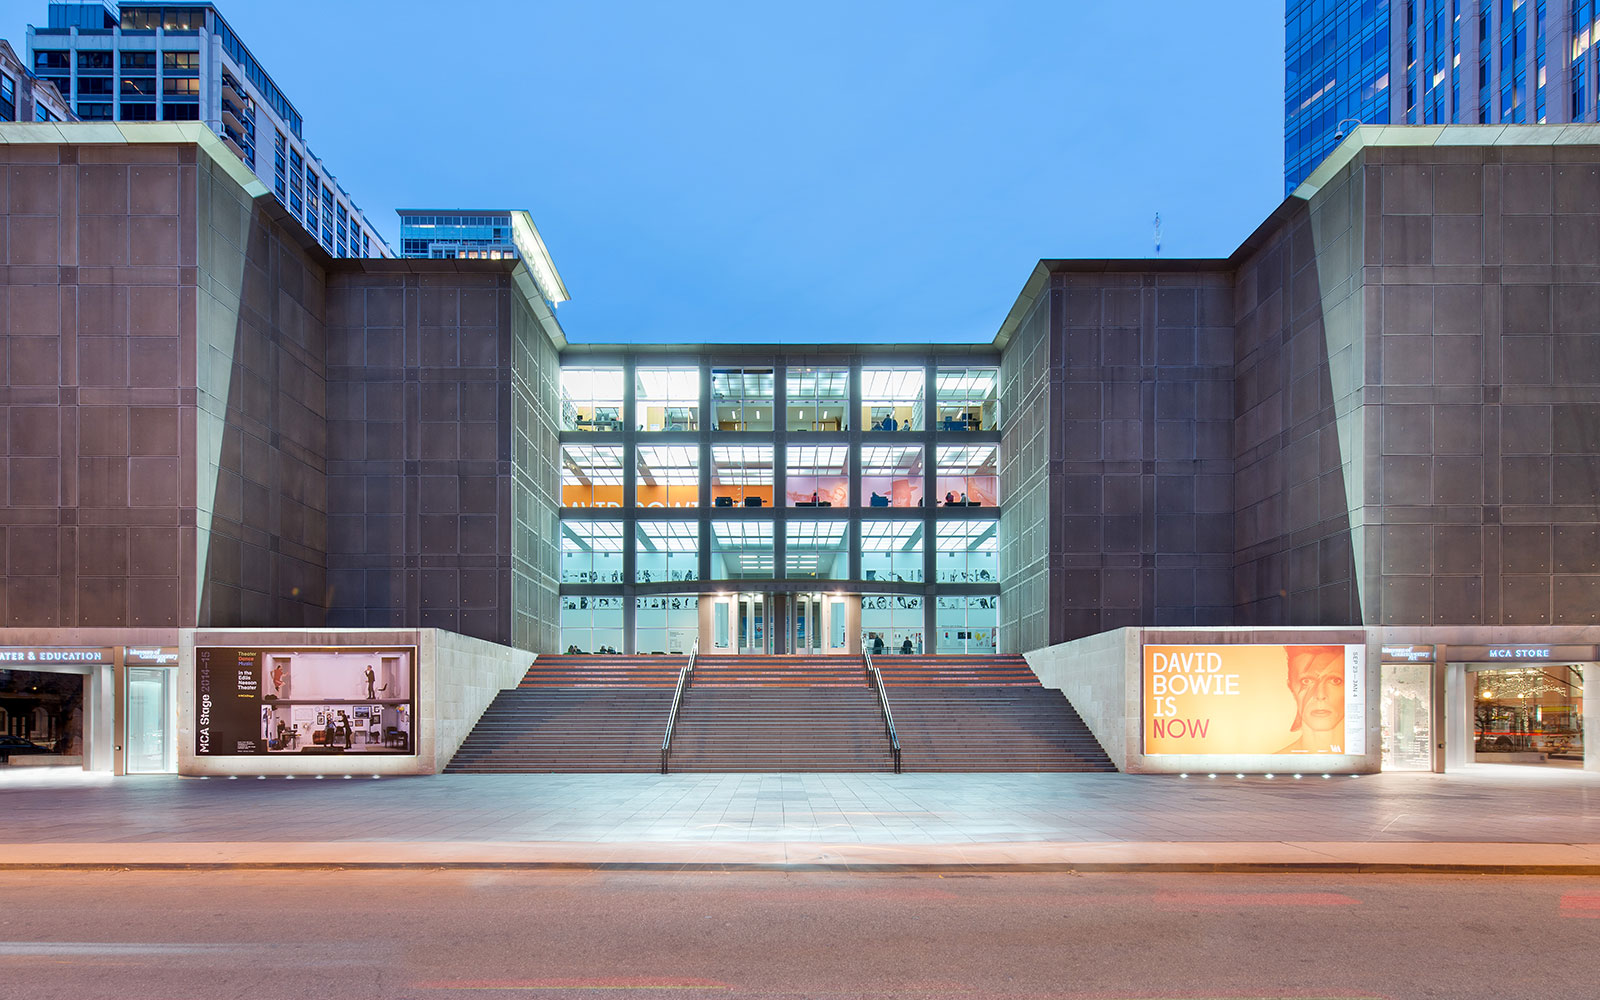 Our Guide to Chicago's Museum of Contemporary Art